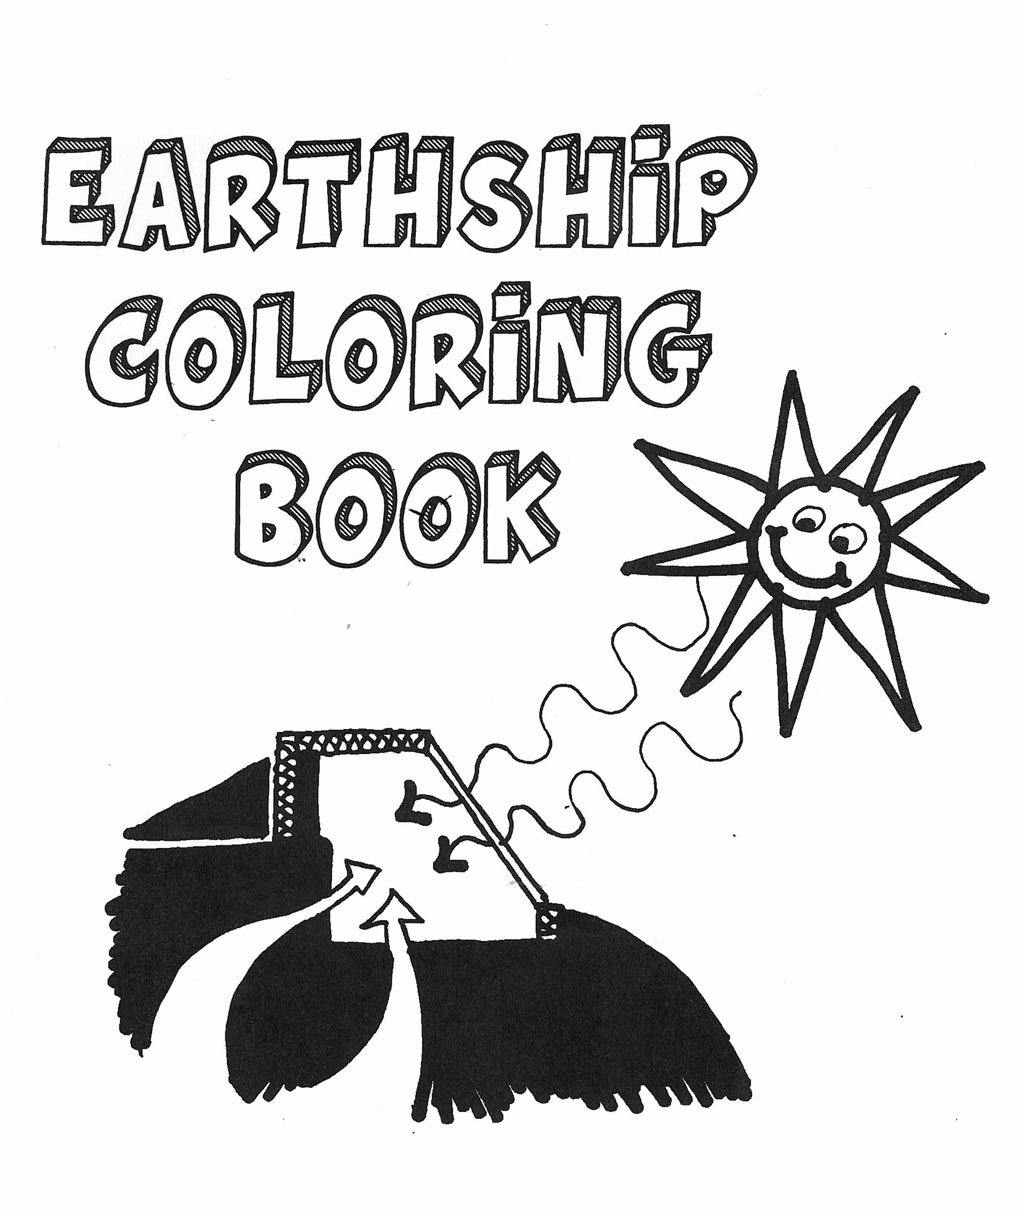 Earthship Coloring Book - Earthship Biotecture